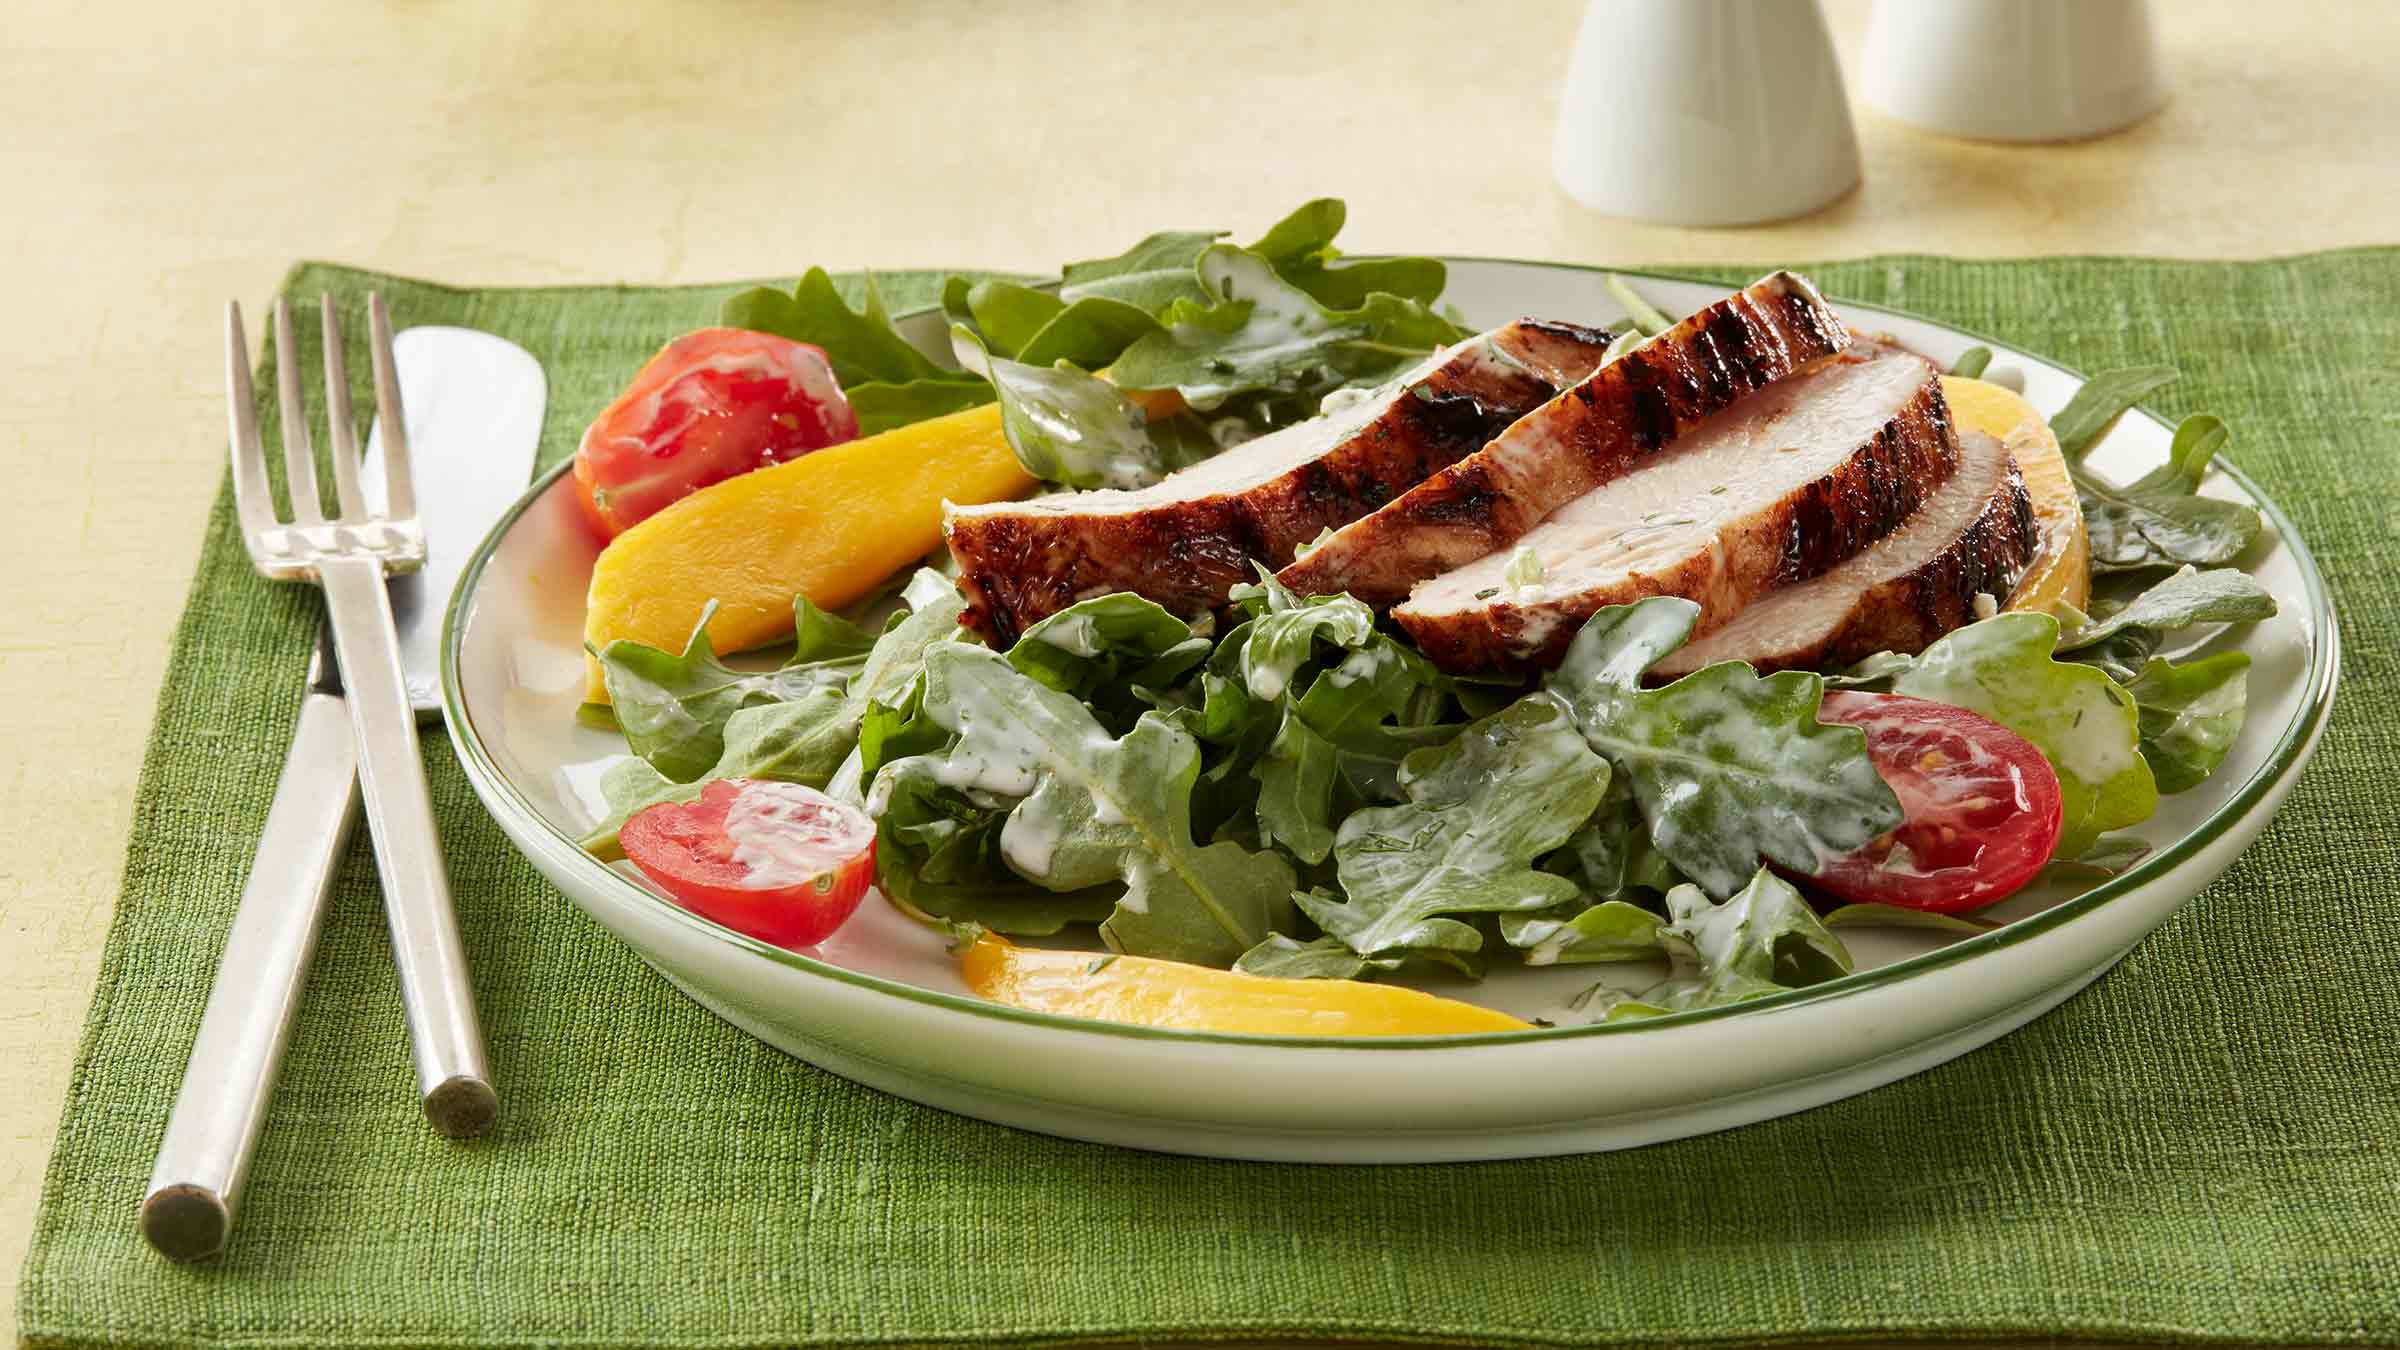 Grilled Chicken Salad with Avocado Lime Dressing